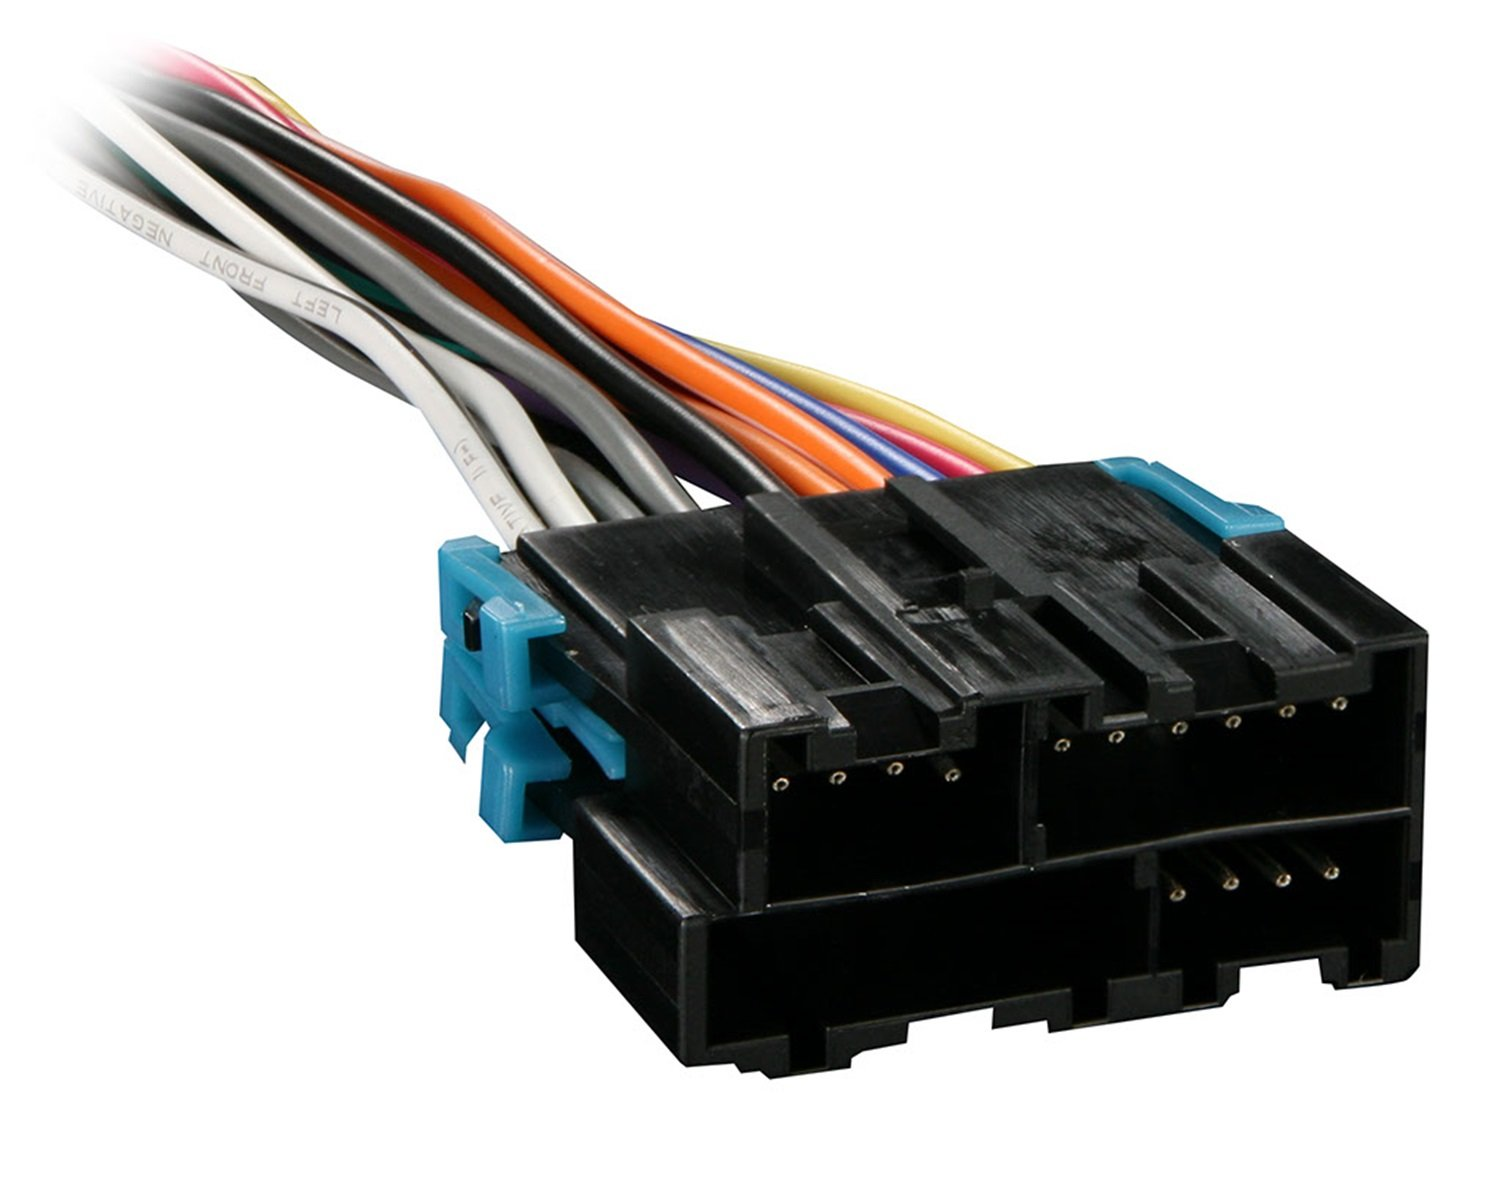 61 CwjZt1hL._SL1500_ radio wiring harnesses amazon com wiring harness for car stereo installation at eliteediting.co